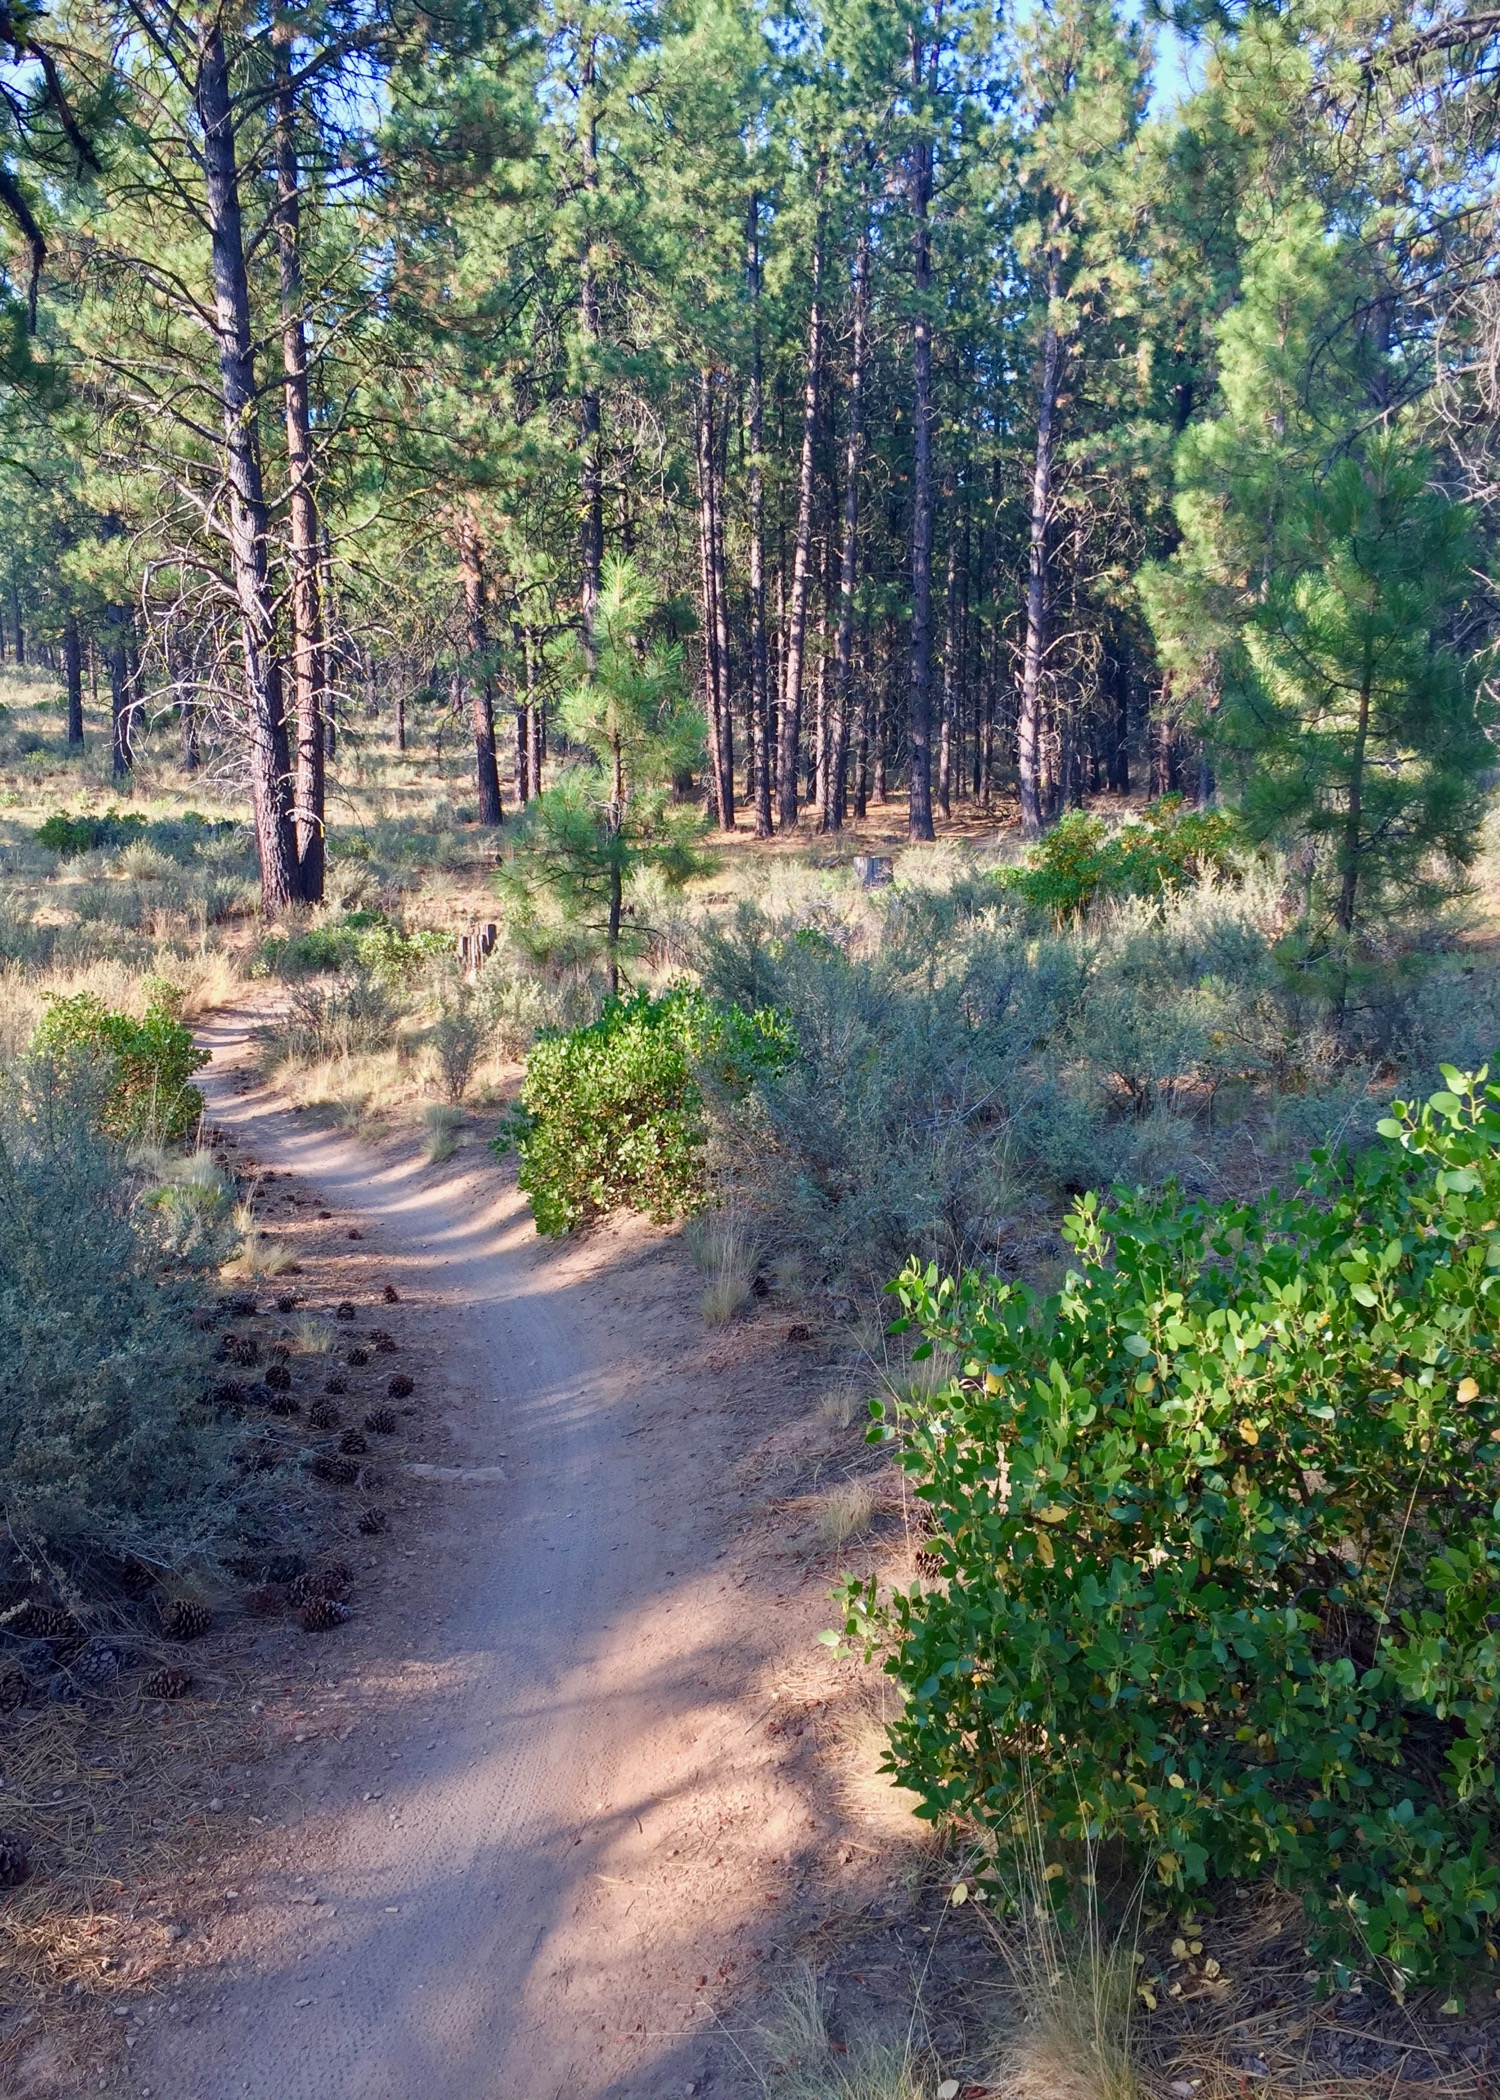 Fast, flowy trails through the pine forest - amazing!